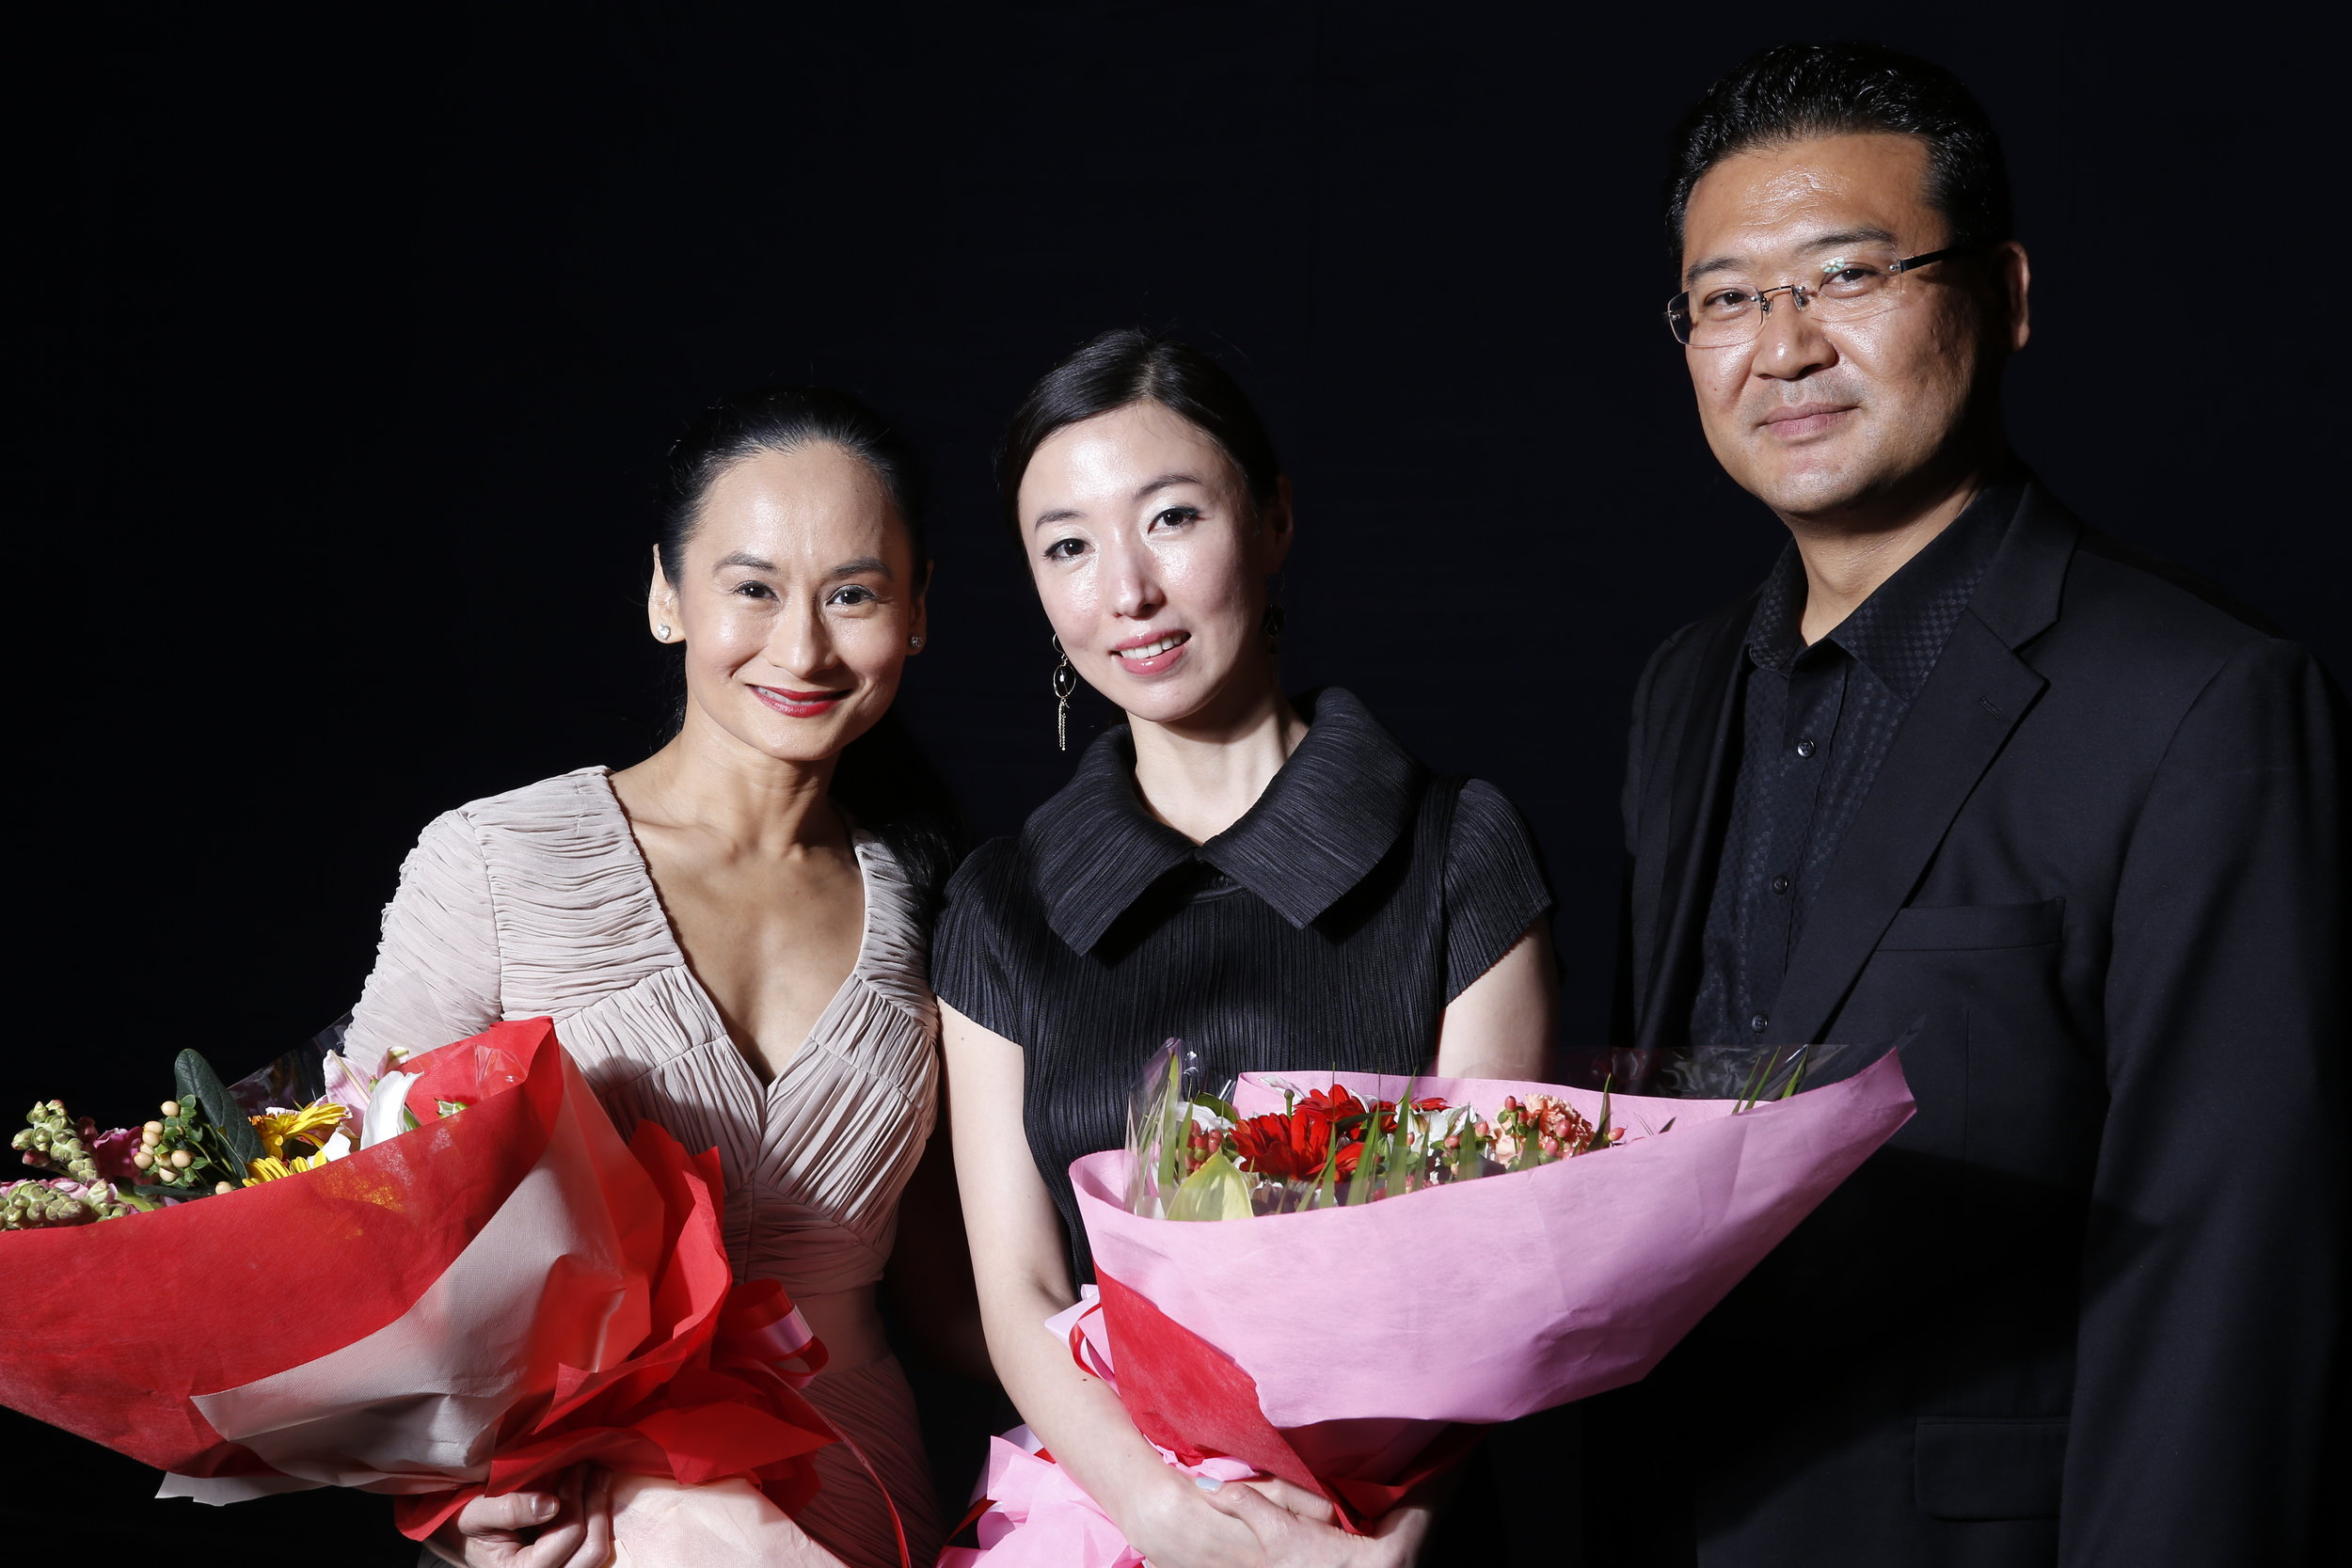 At curtain call, artistic directors Lisa Macuja-Elizalde and Choi So Bin pose with Mr. Moon Hyung Suk who made the collaboration between the two dance companies possible. Photo by Ocs Alvarez